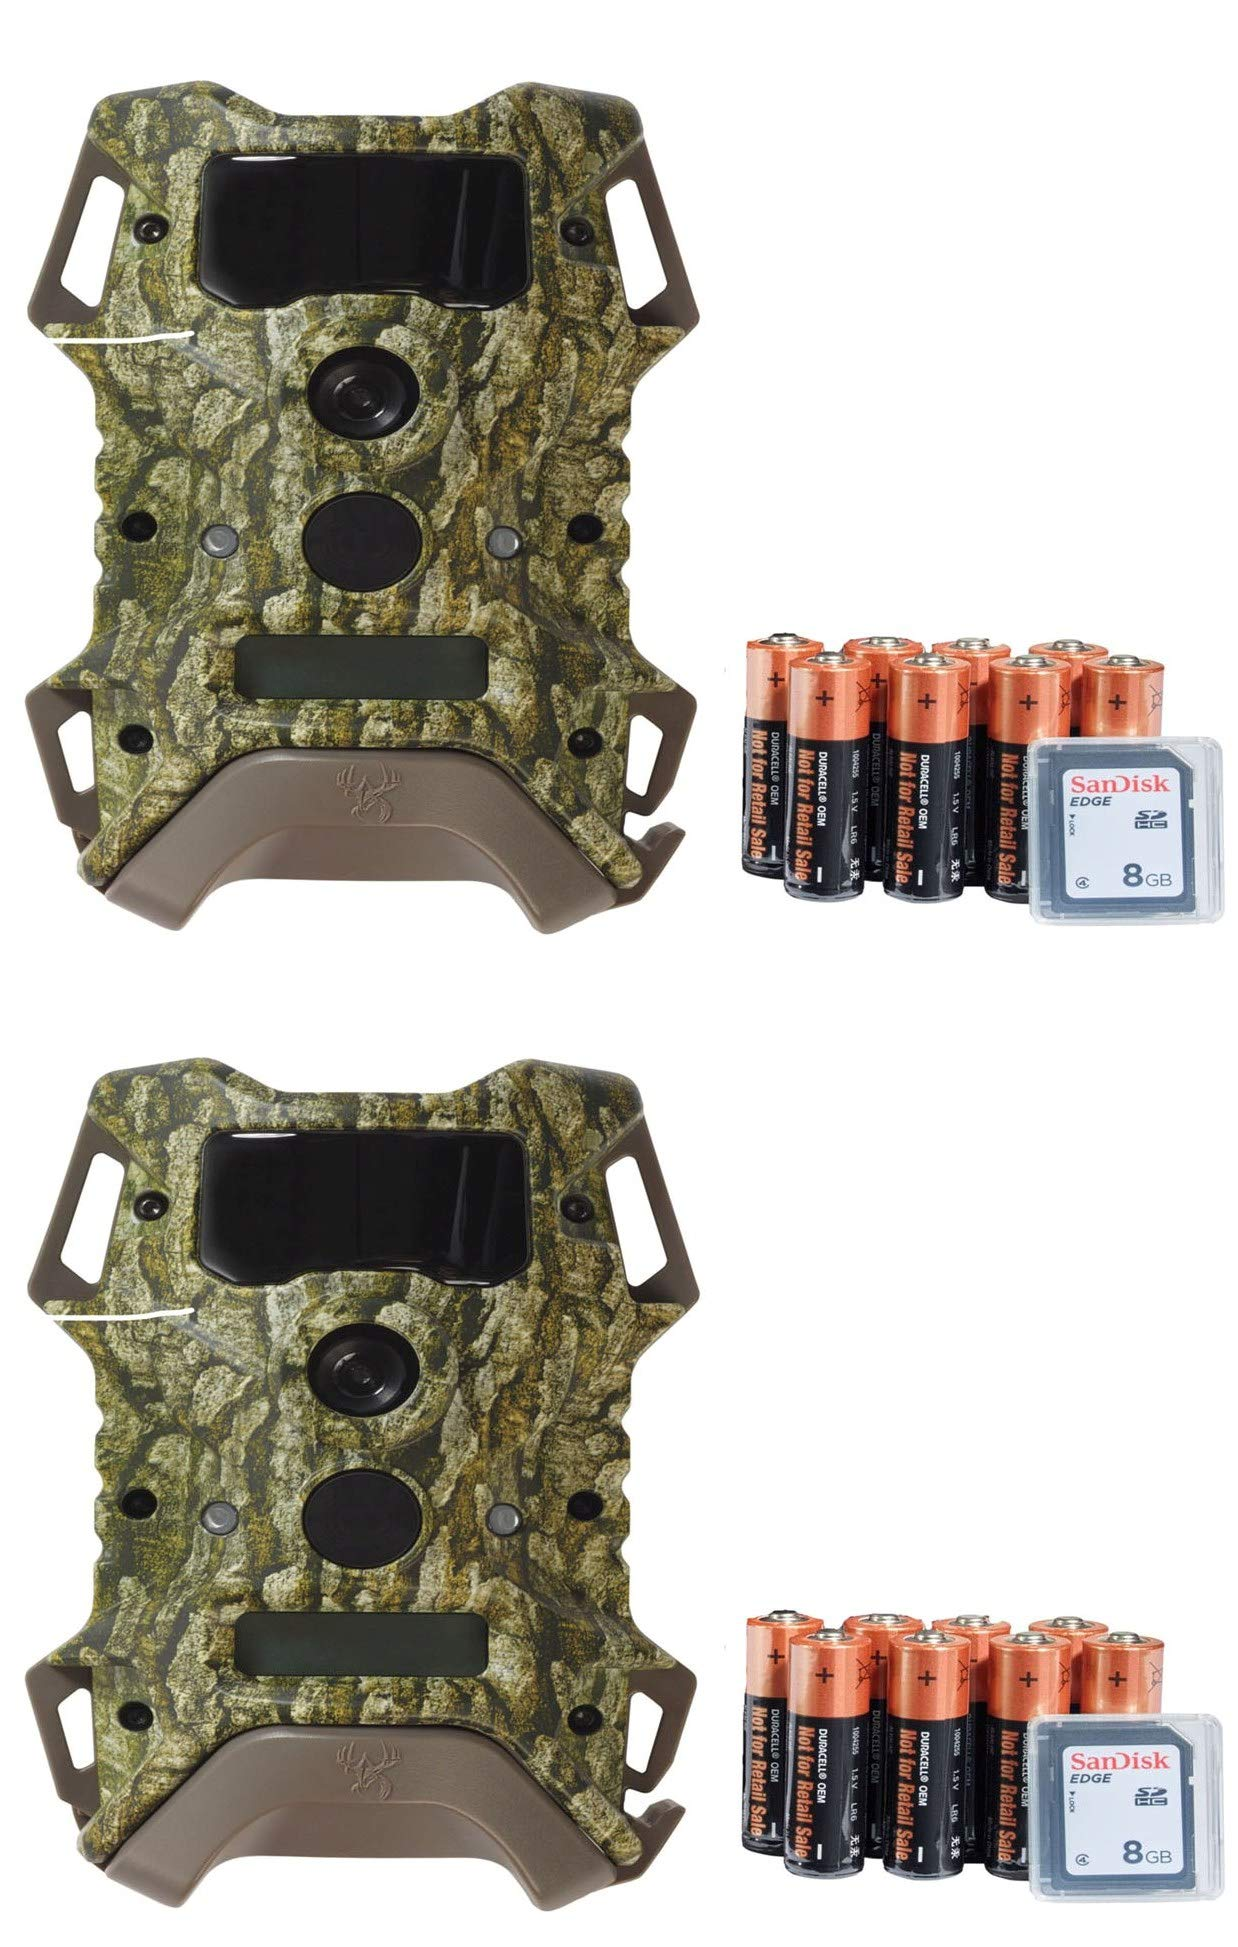 Wildgame Innovations 2 Pack DRT Extreme Lightsout Trail Scouting Cameras w/SD Card & Batteries by Wildgame Innovations